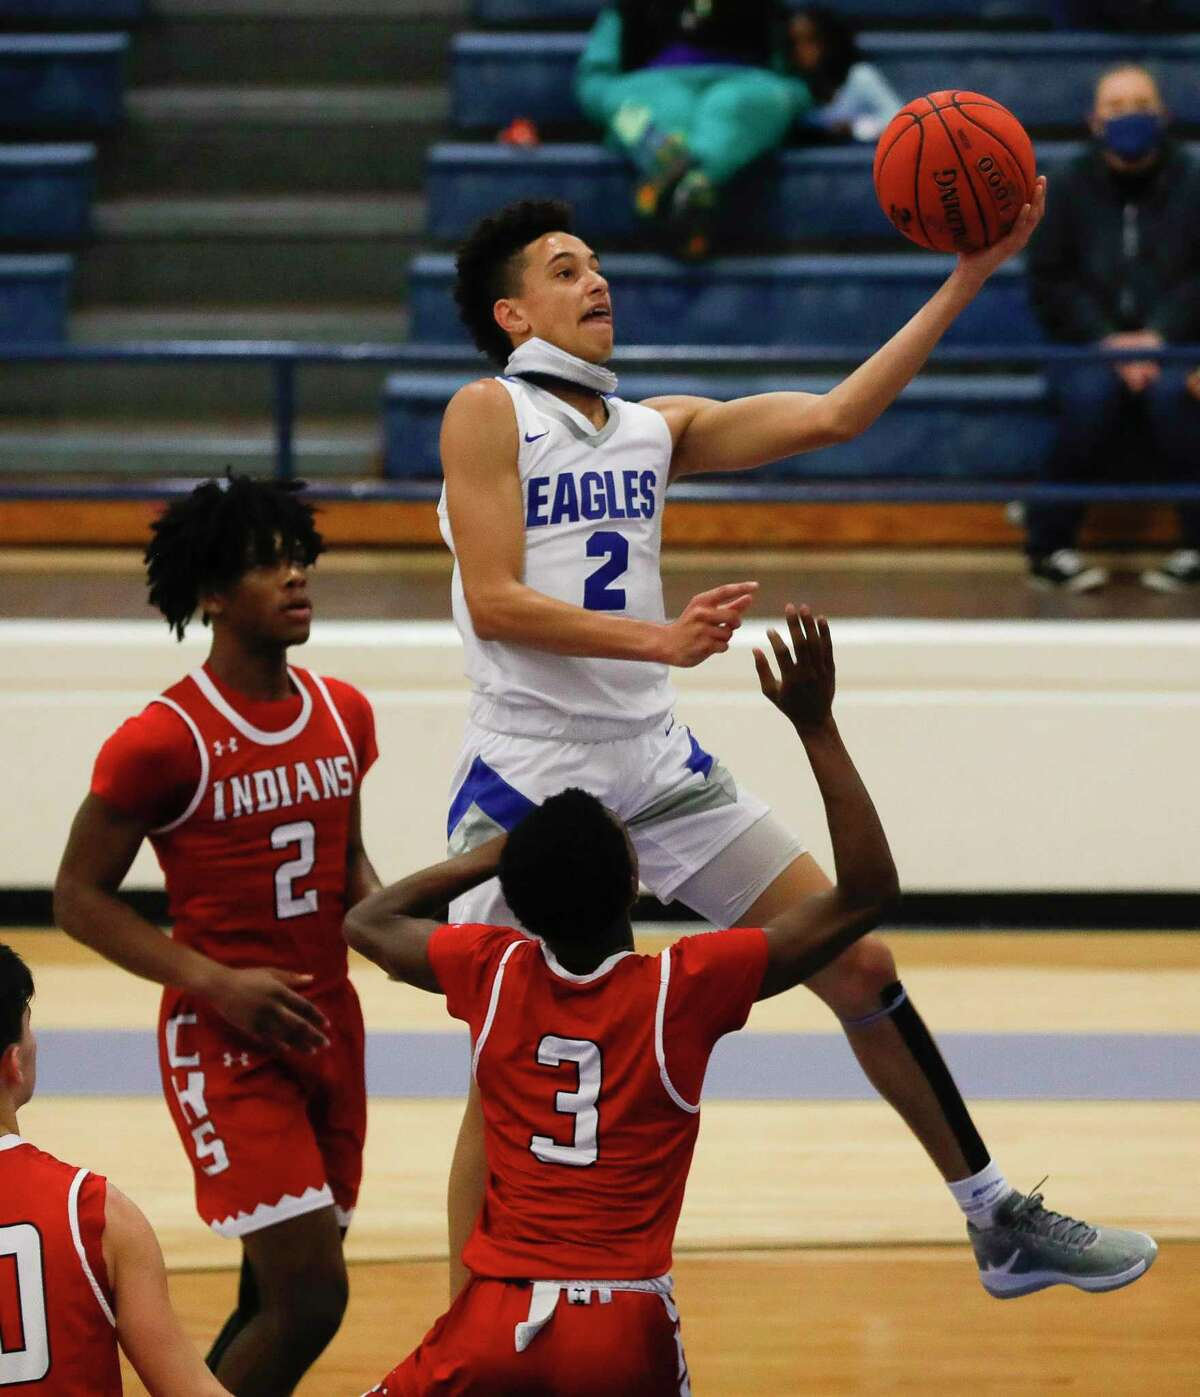 New Caney's Kendall Dove was named the District 20-5A Newcomer of the Year.